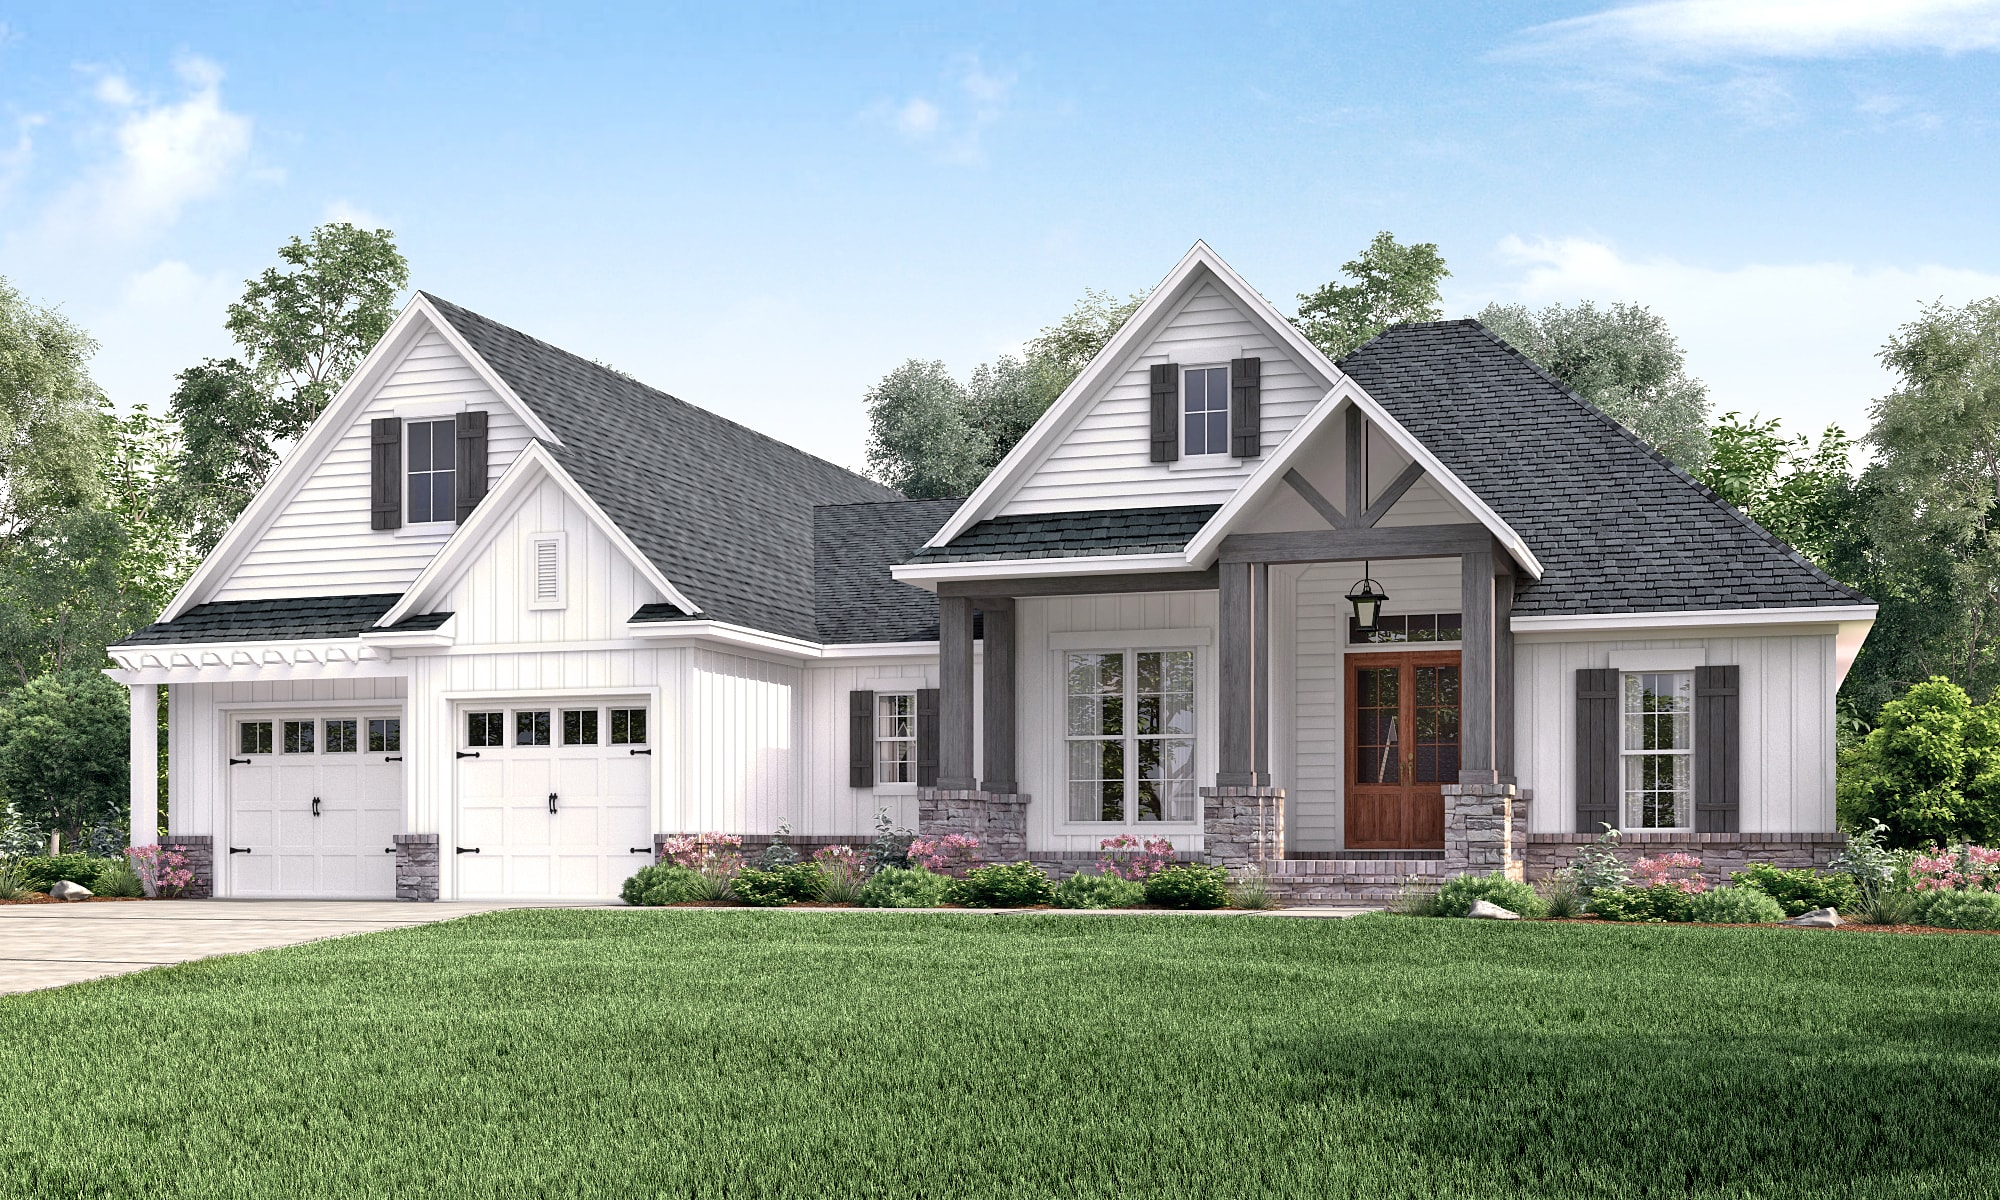 Country/Craftsman style house plan #142-1177